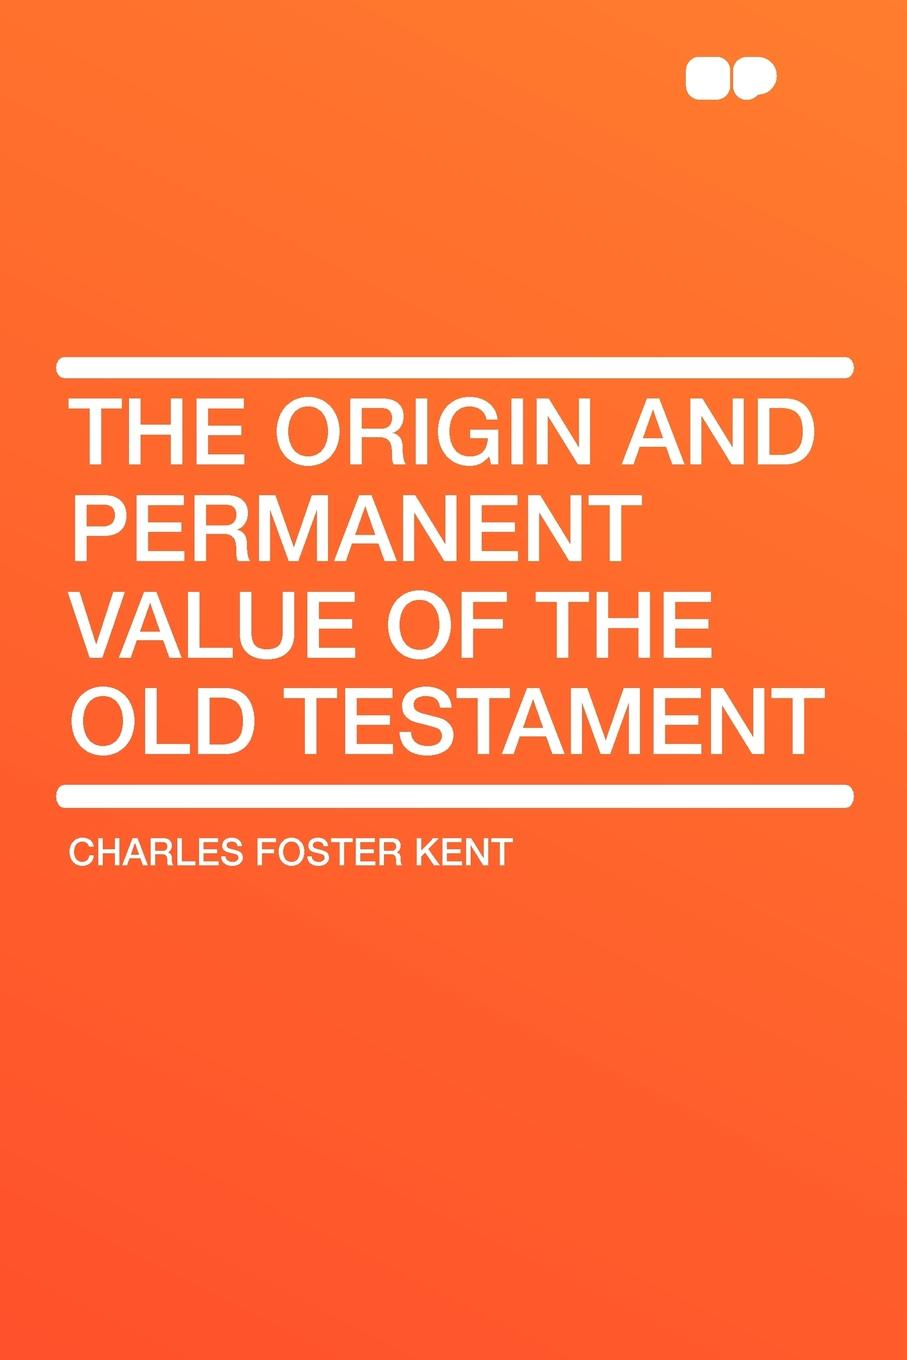 Charles Foster Kent The Origin and Permanent Value of the Old Testament